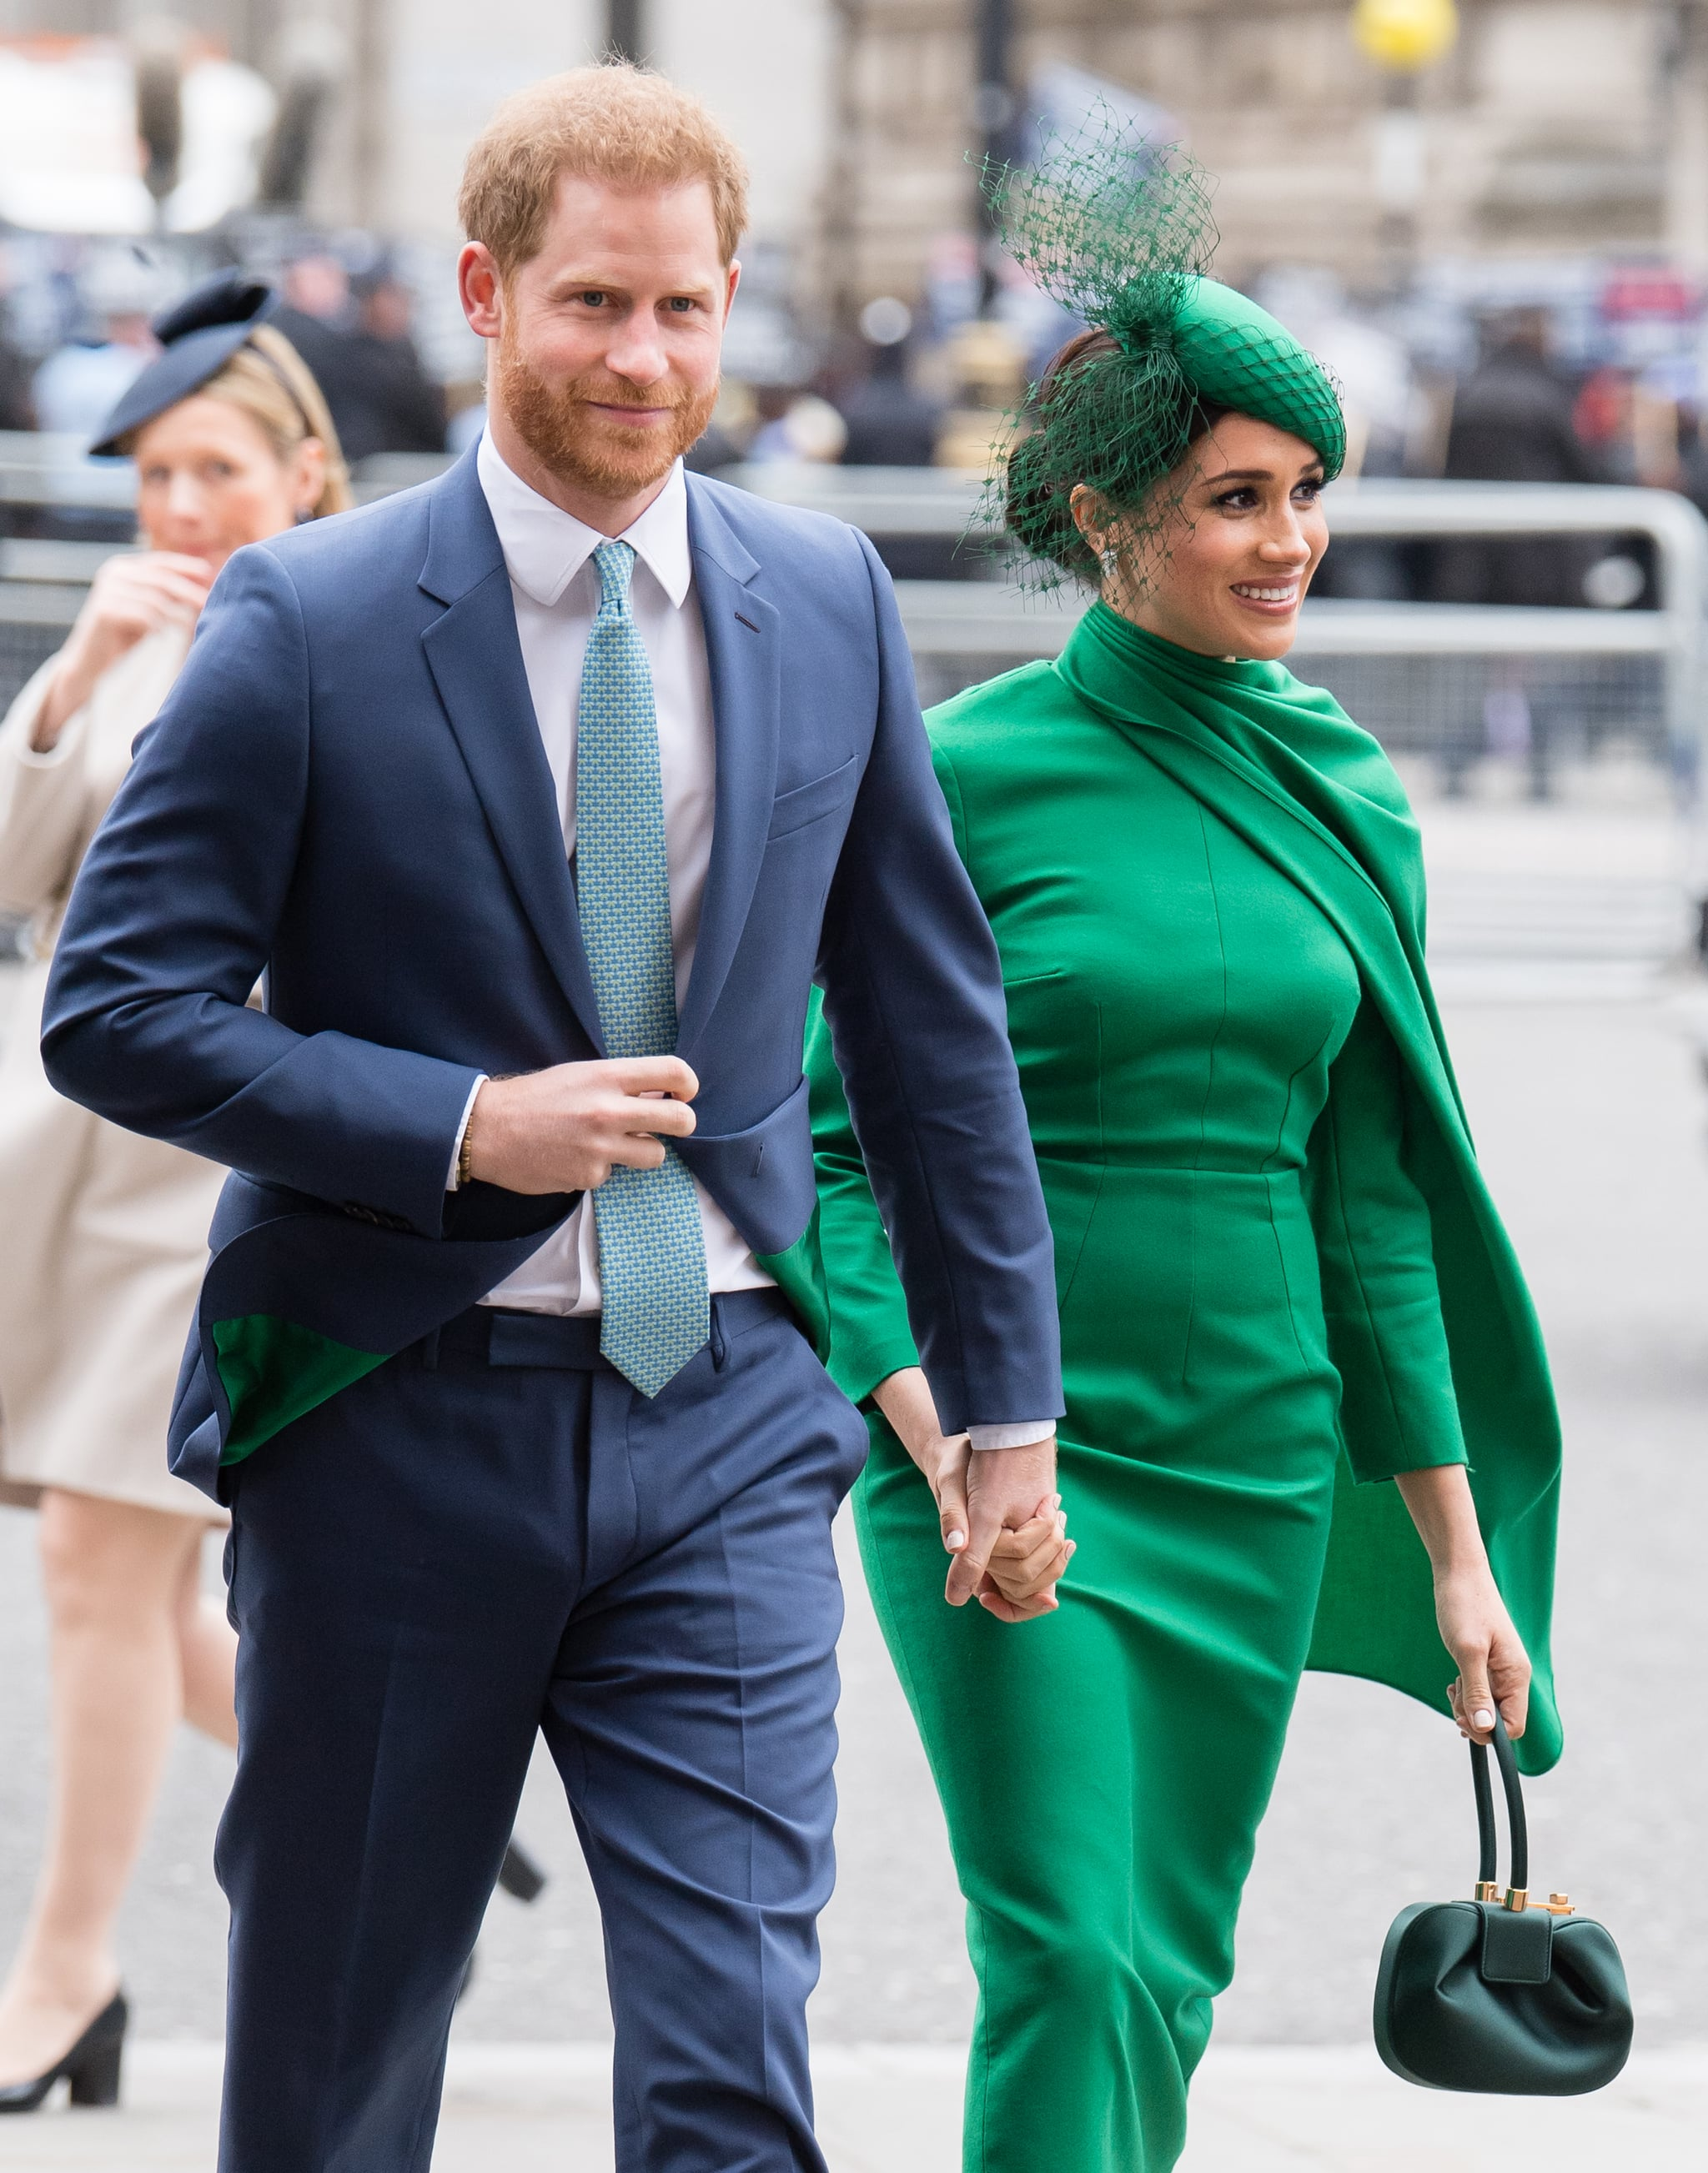 where do prince harry and meghan markle live 2020 popsugar celebrity australia where do prince harry and meghan markle